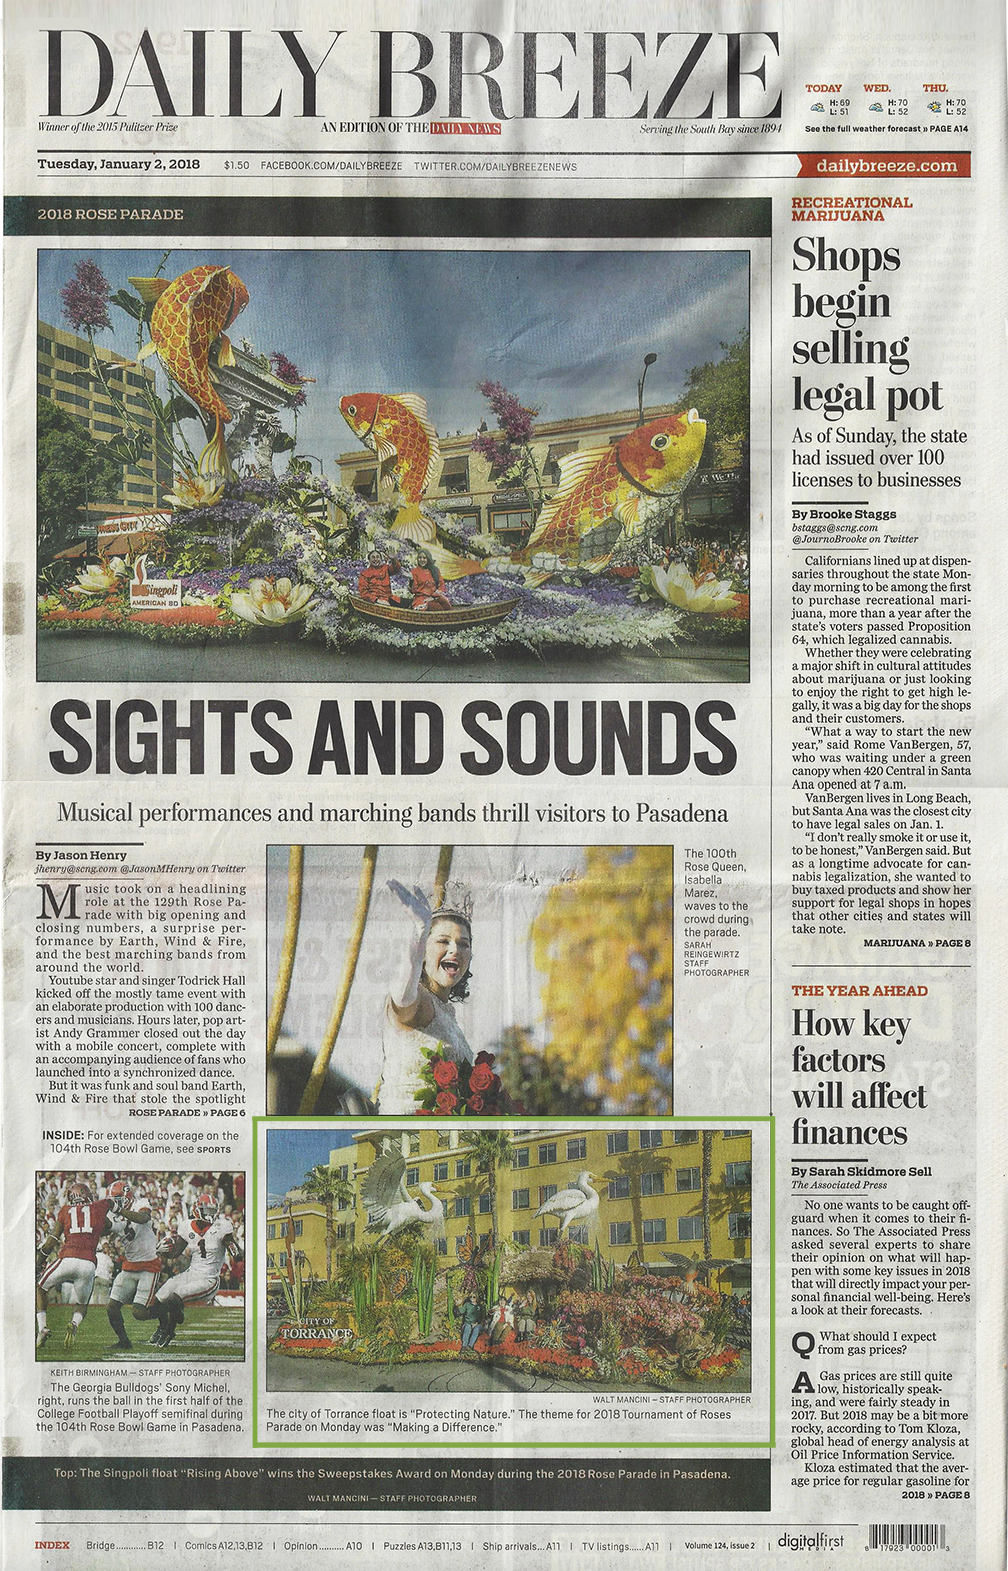 City of Torrance Rose Parade float with Madrona Marsh featured on front page of Daily Breeze